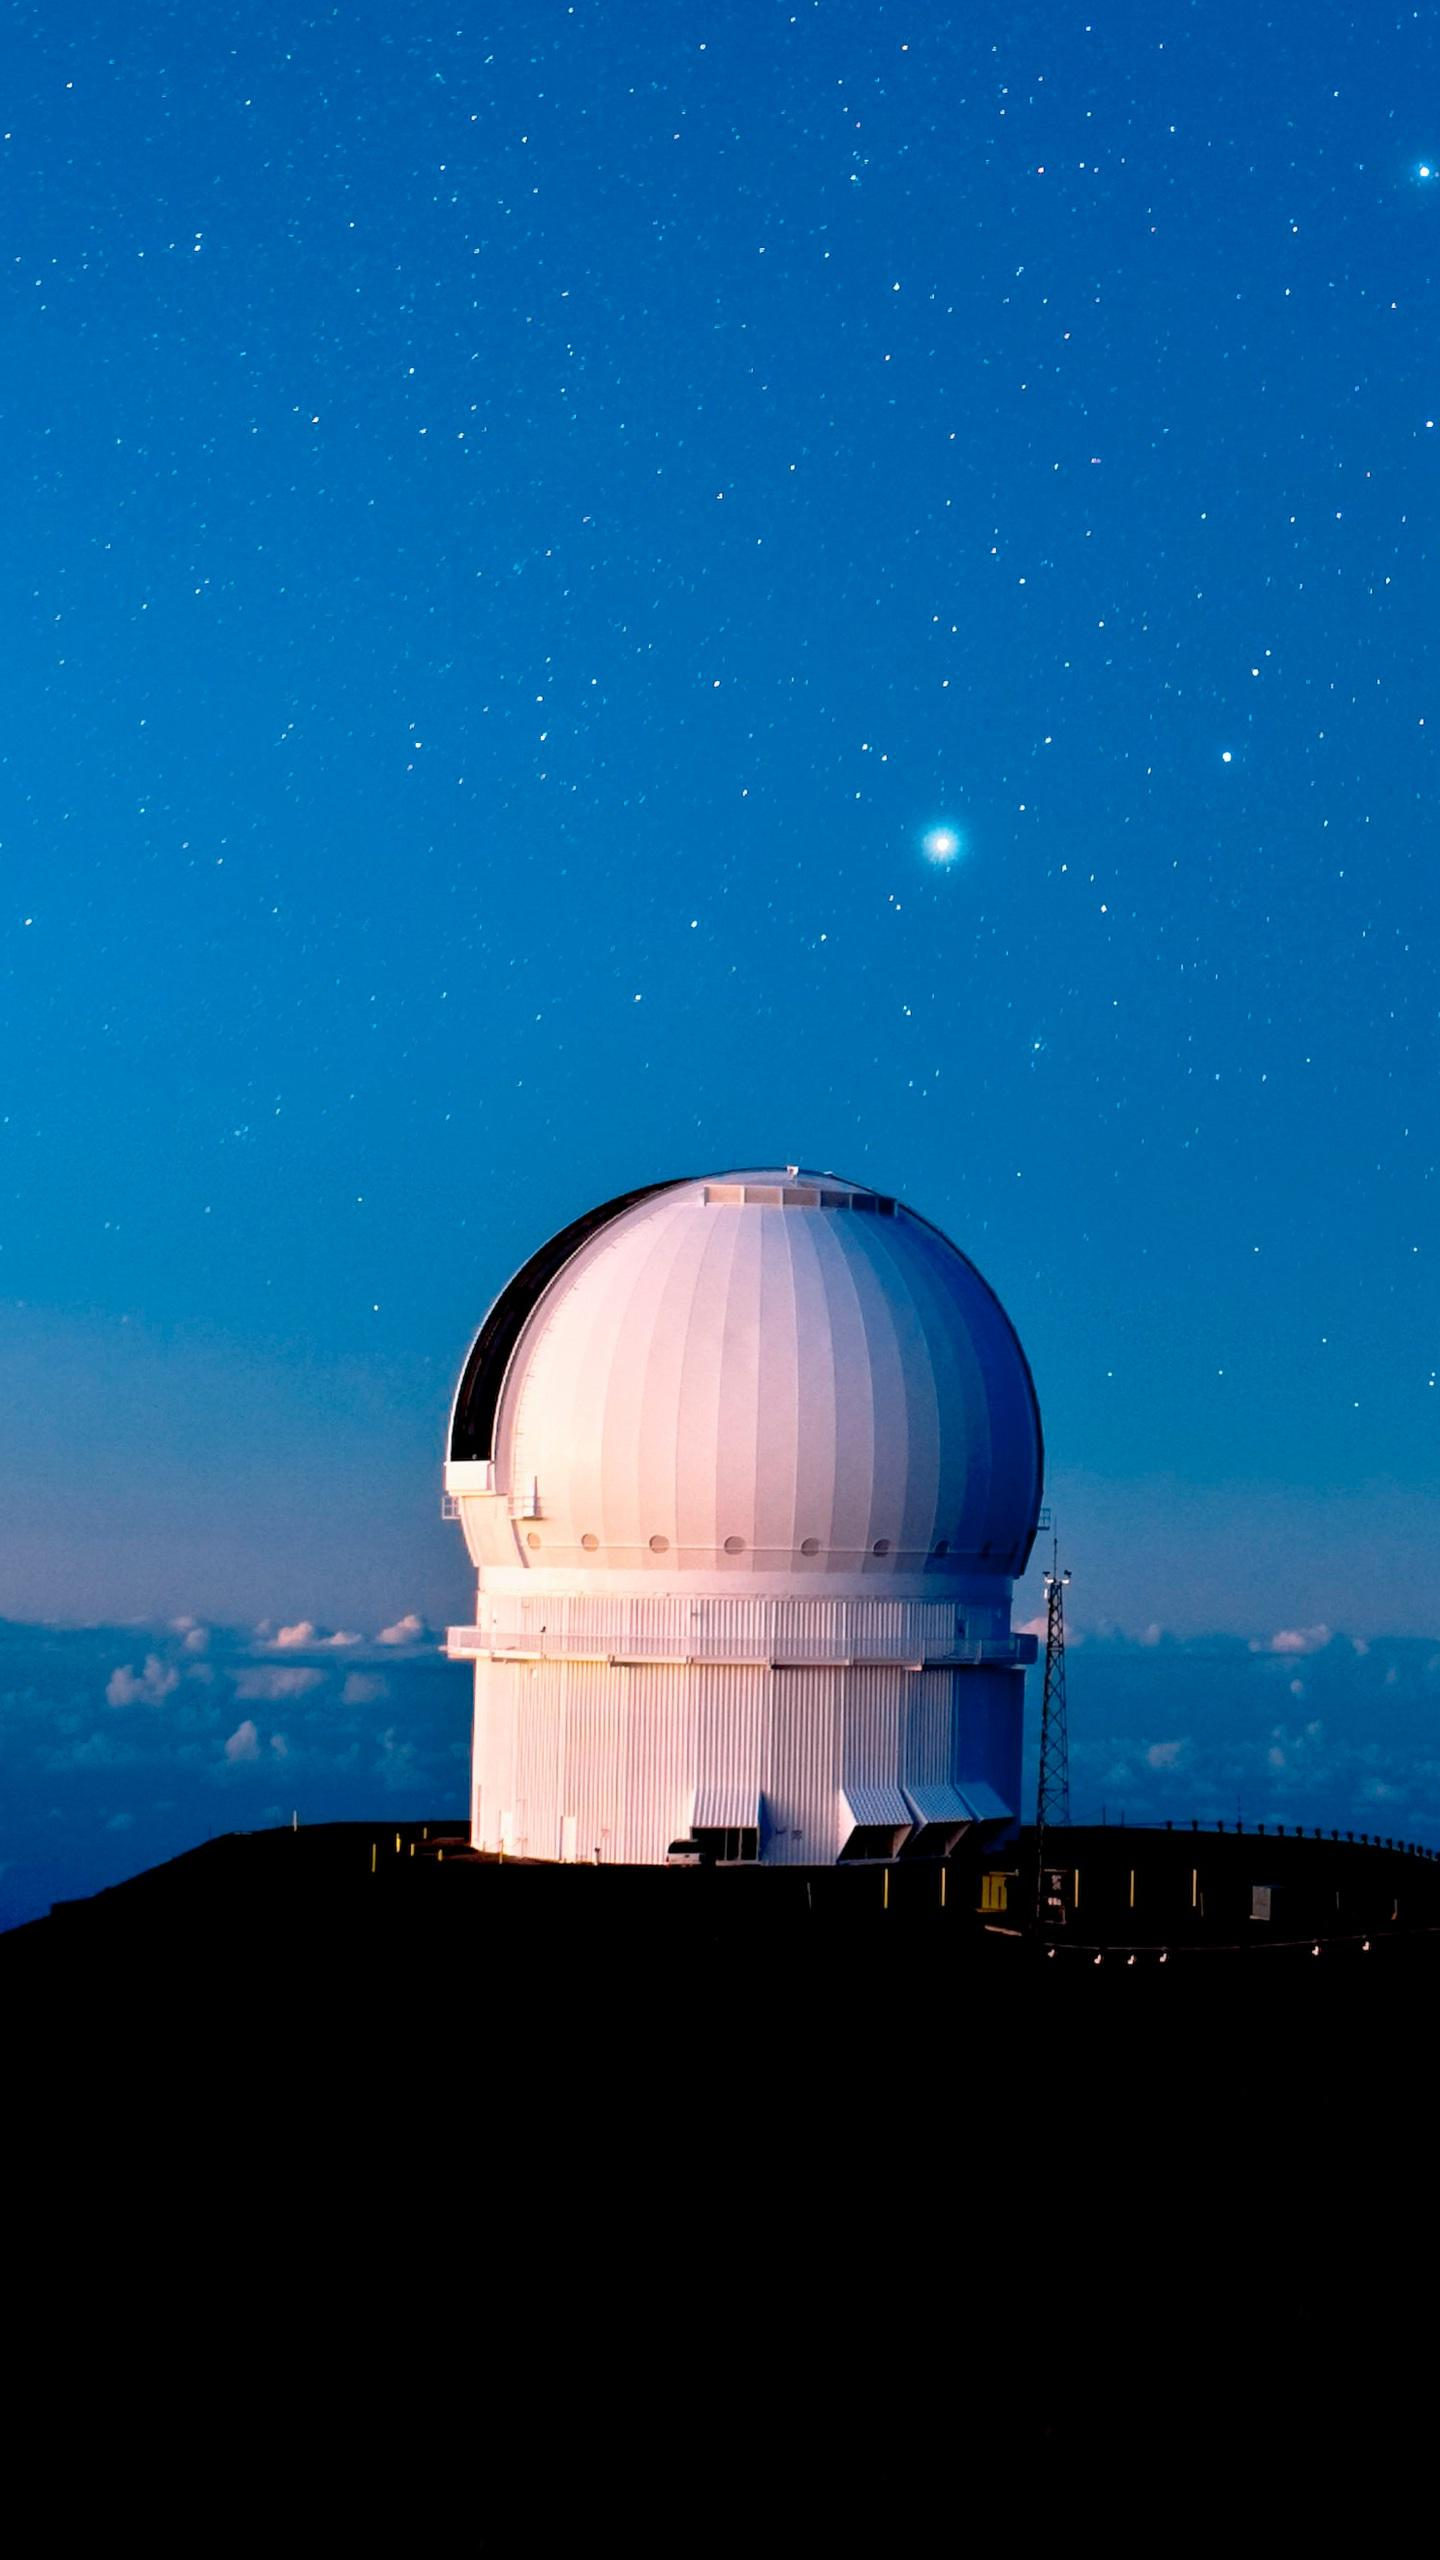 Astronomical telescope. As the performance of astronomical telescopes improves and improves, it also advances human understanding of the universe.